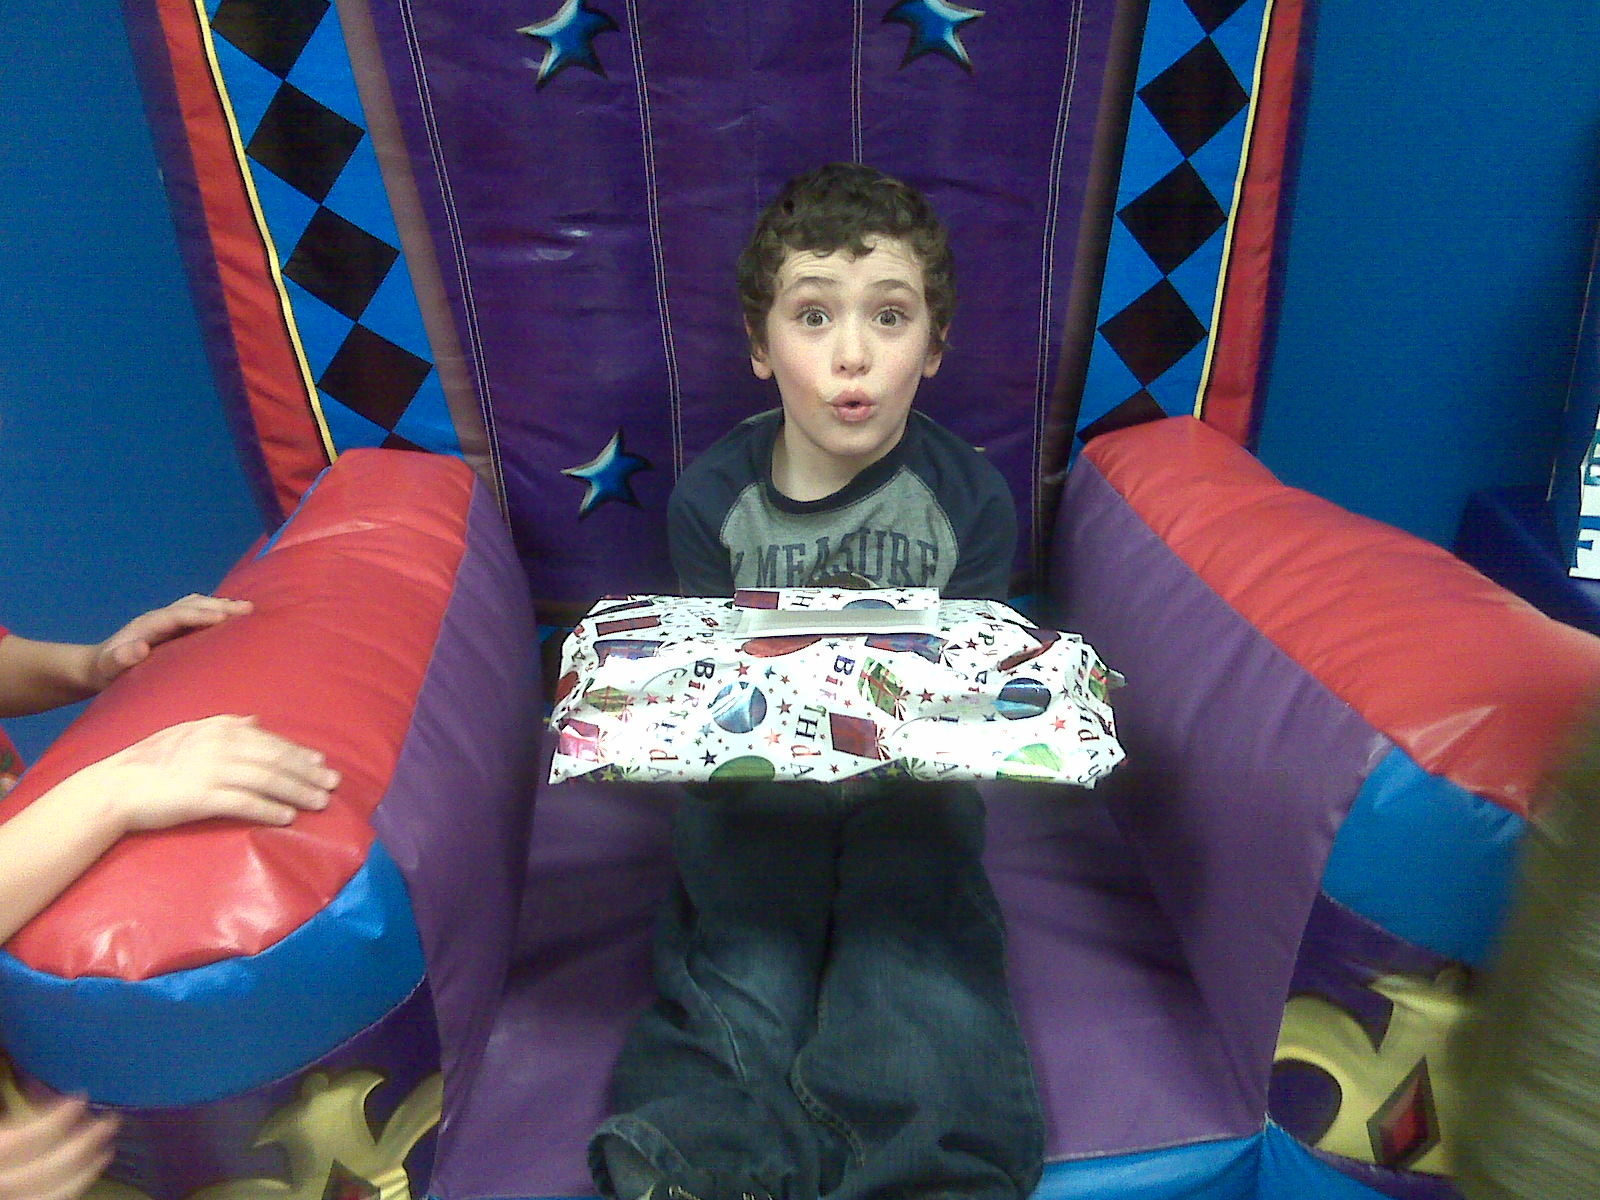 [7th+bday+party+in+chair.aspx]